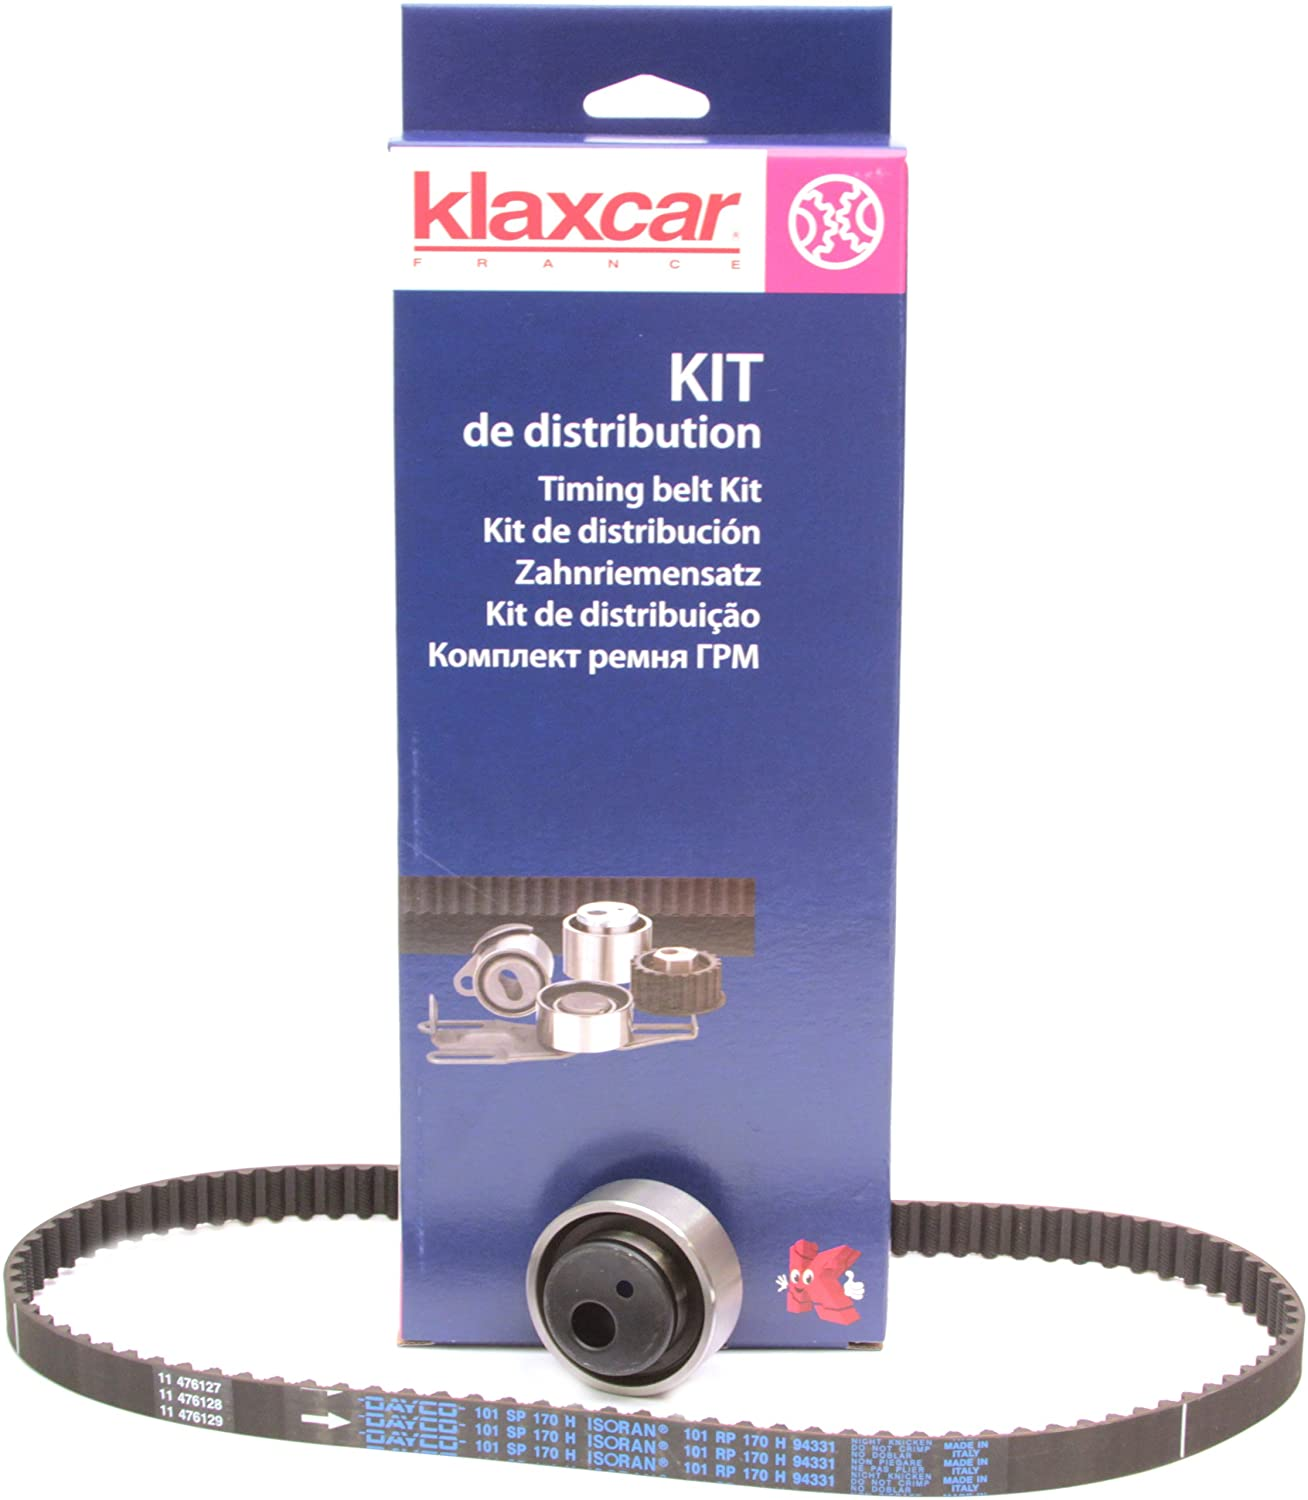 Klaxcar 40018Z - Kit de distribución: Amazon.es: Coche y moto